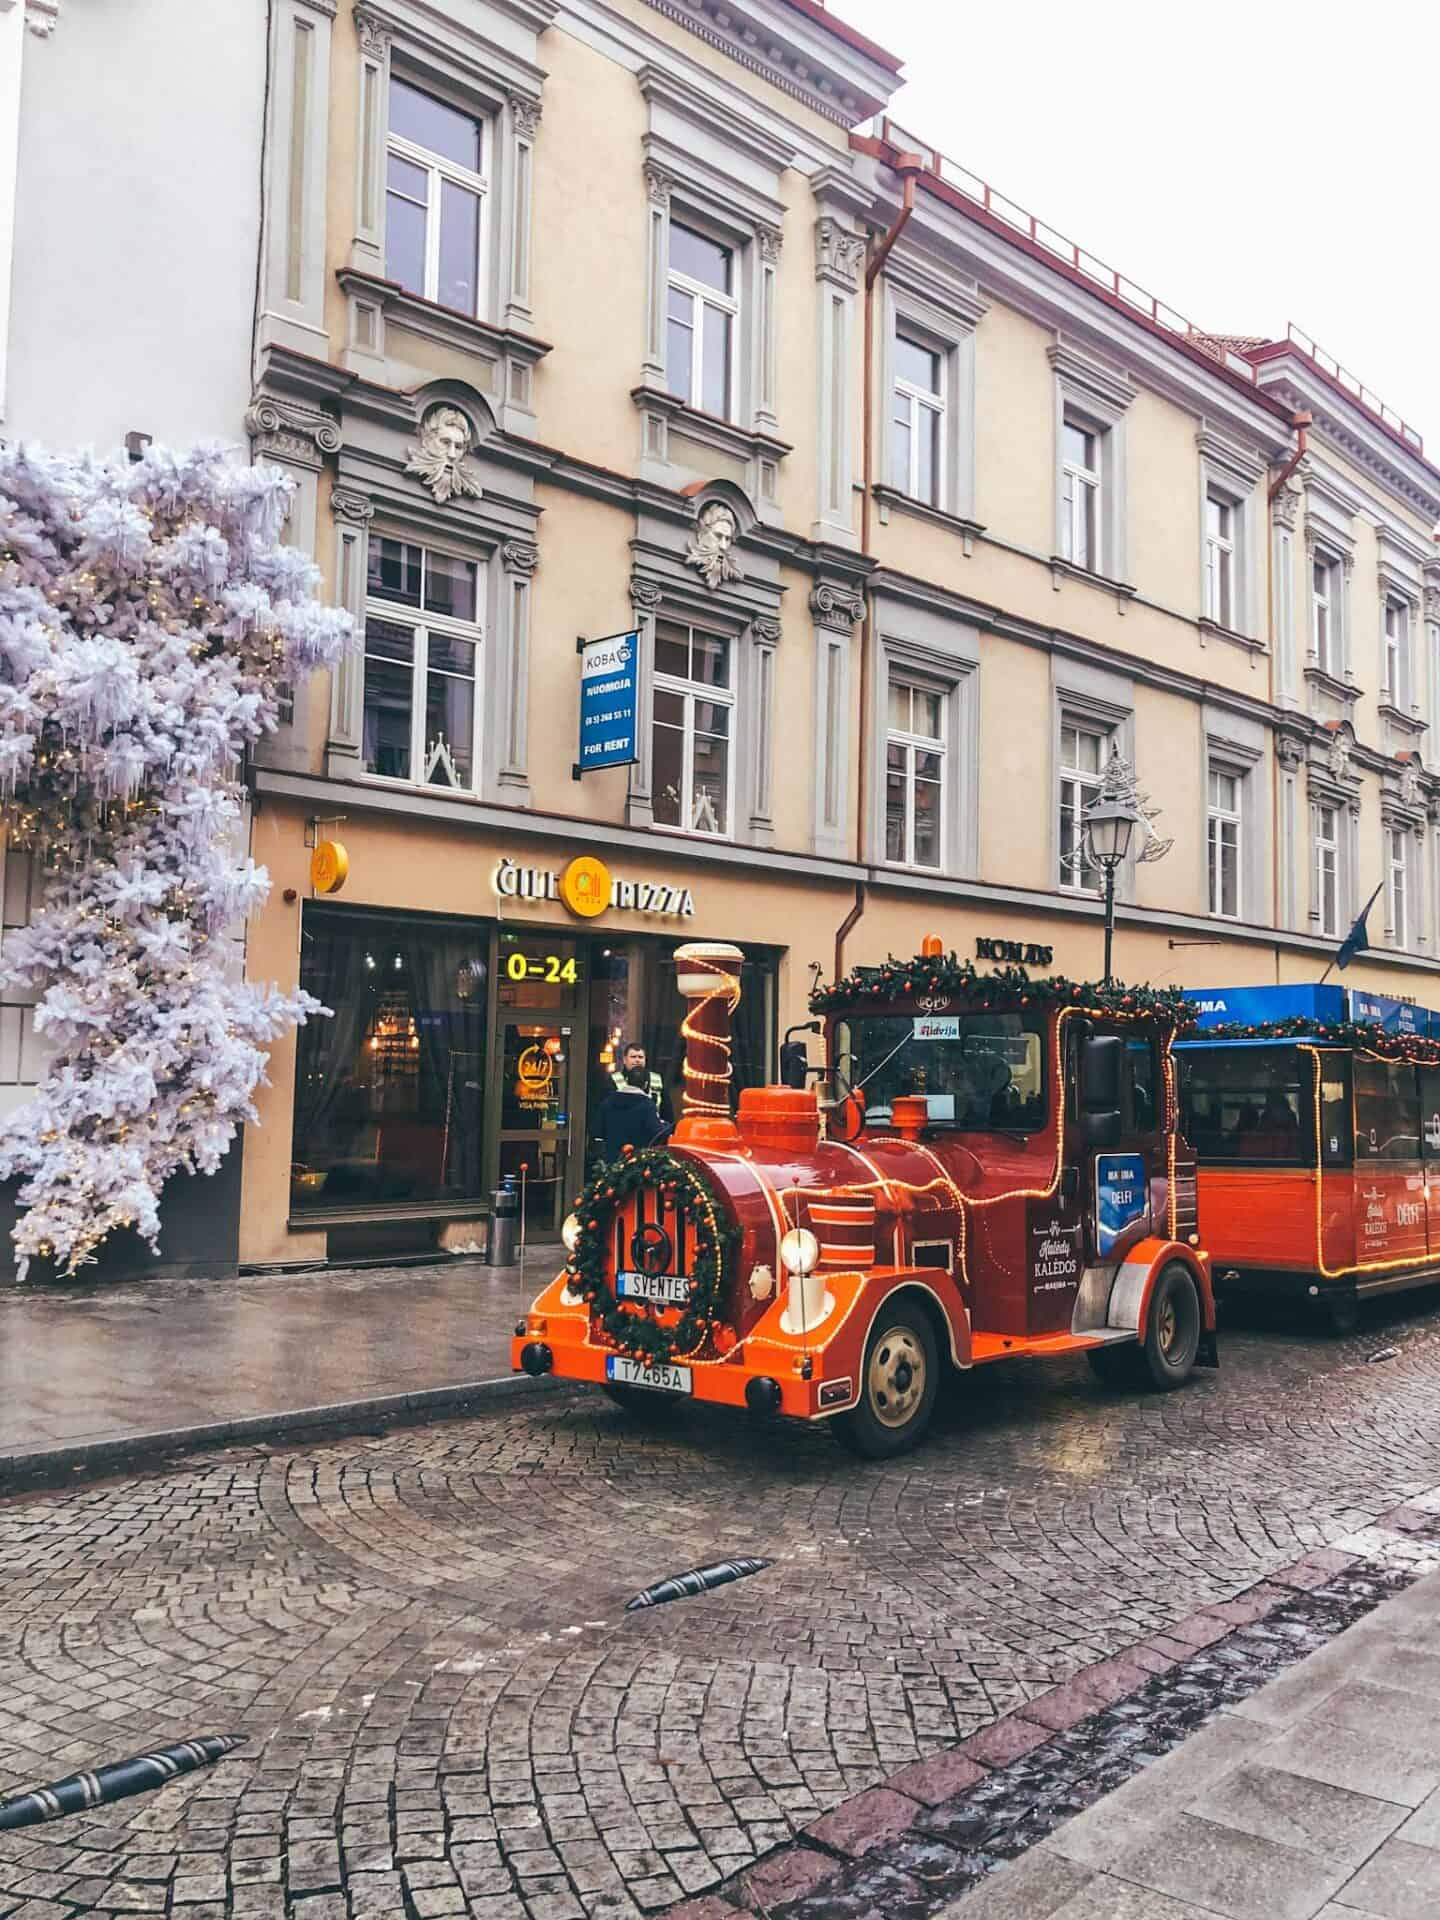 A red train park in front of old buildings.